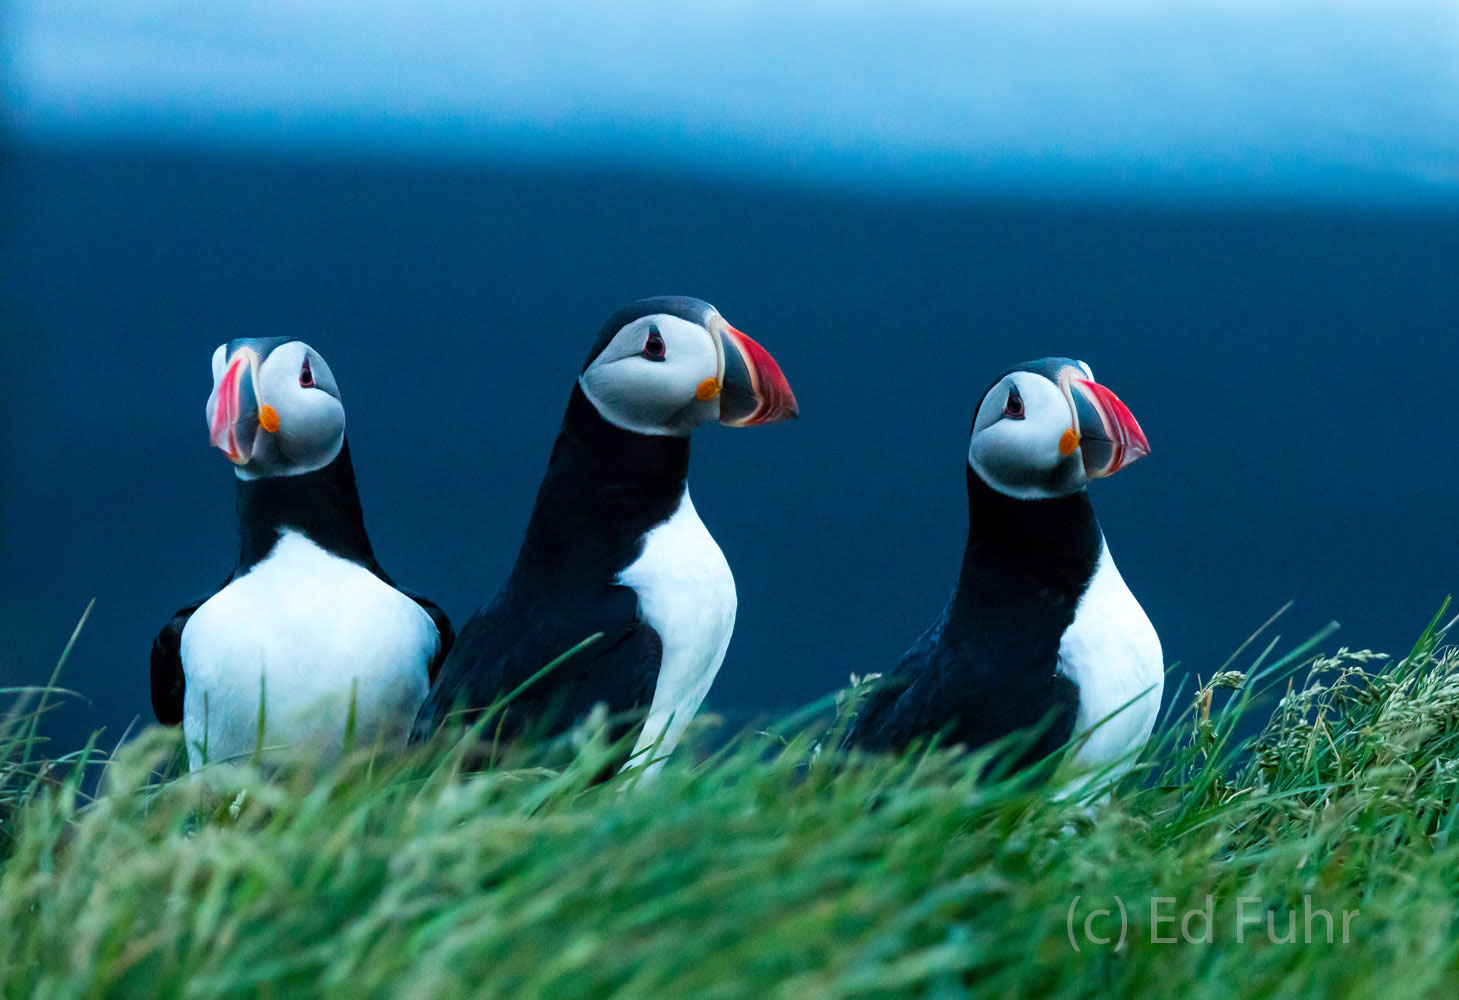 During midsummer, puffins return to the cliffs high above the ocean in Reynisfjara or black sand beach, often raising families...